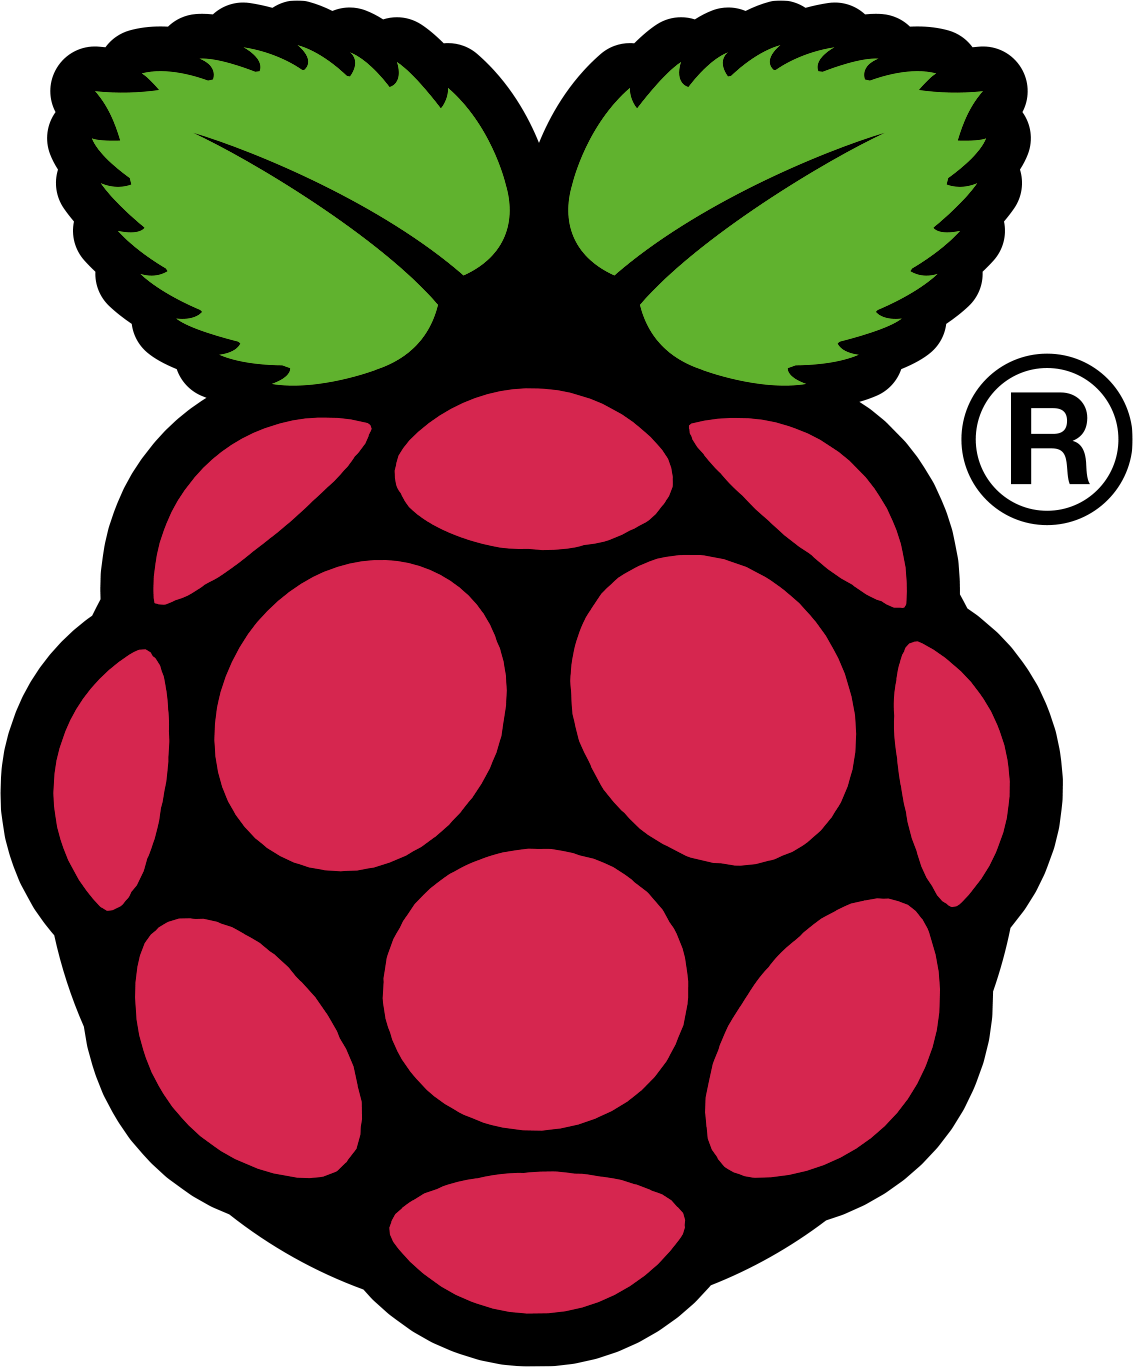 Powered by Raspberry Pi